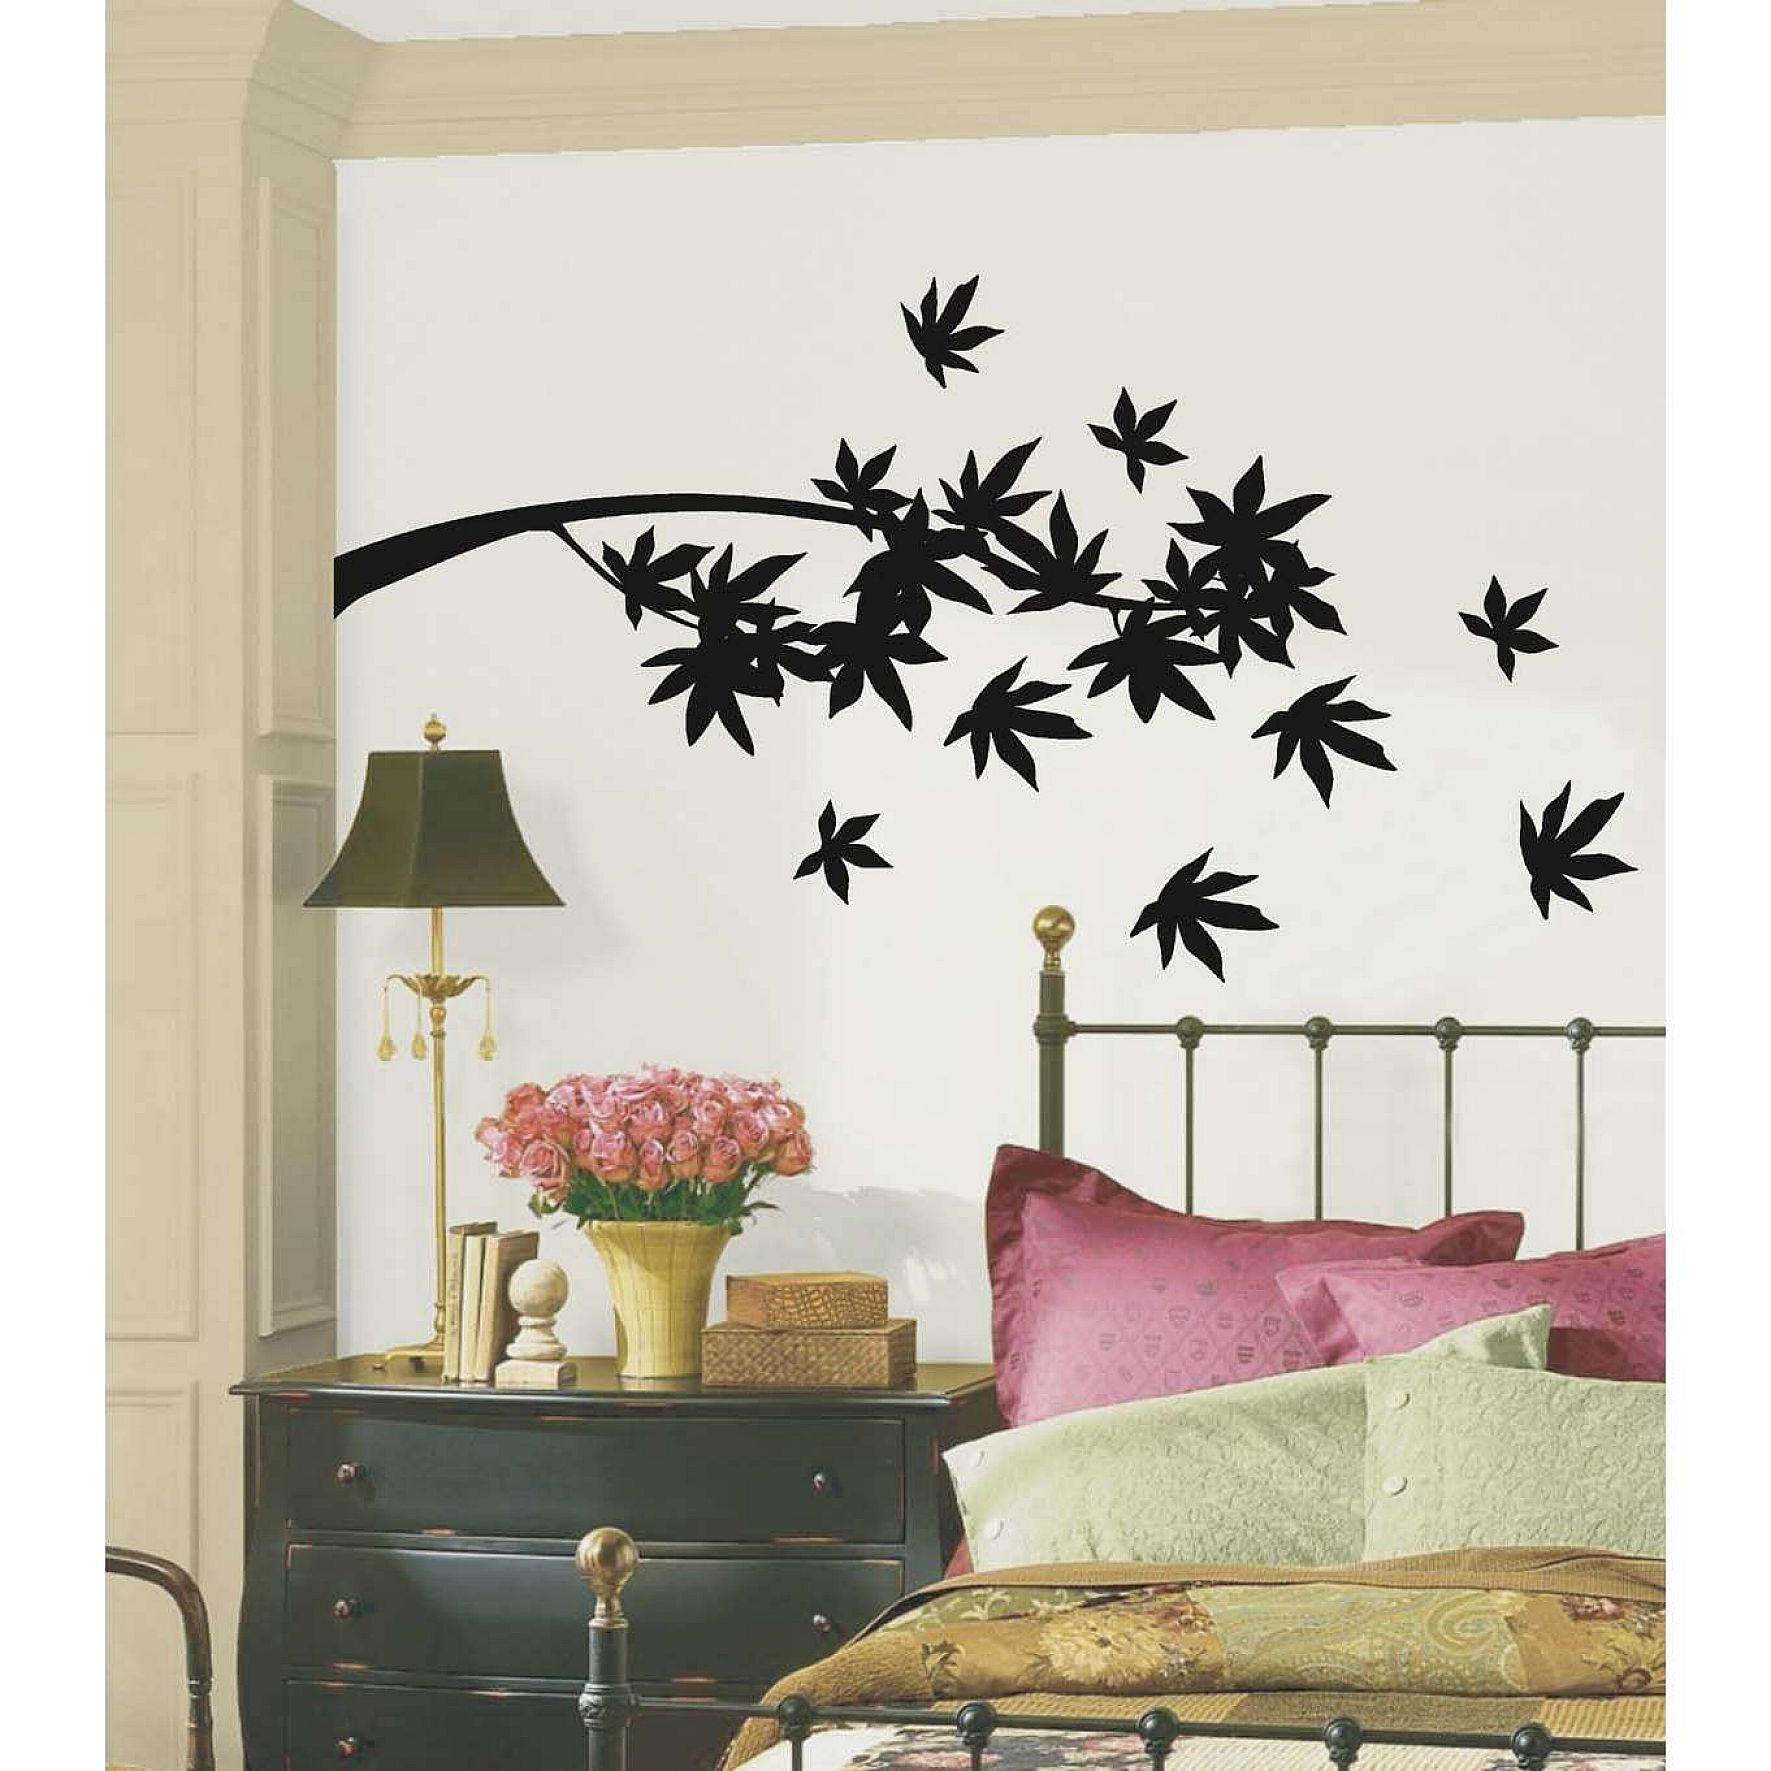 Exciting Bedroom Wall Decor Cool Design With Simple Black Tree ...